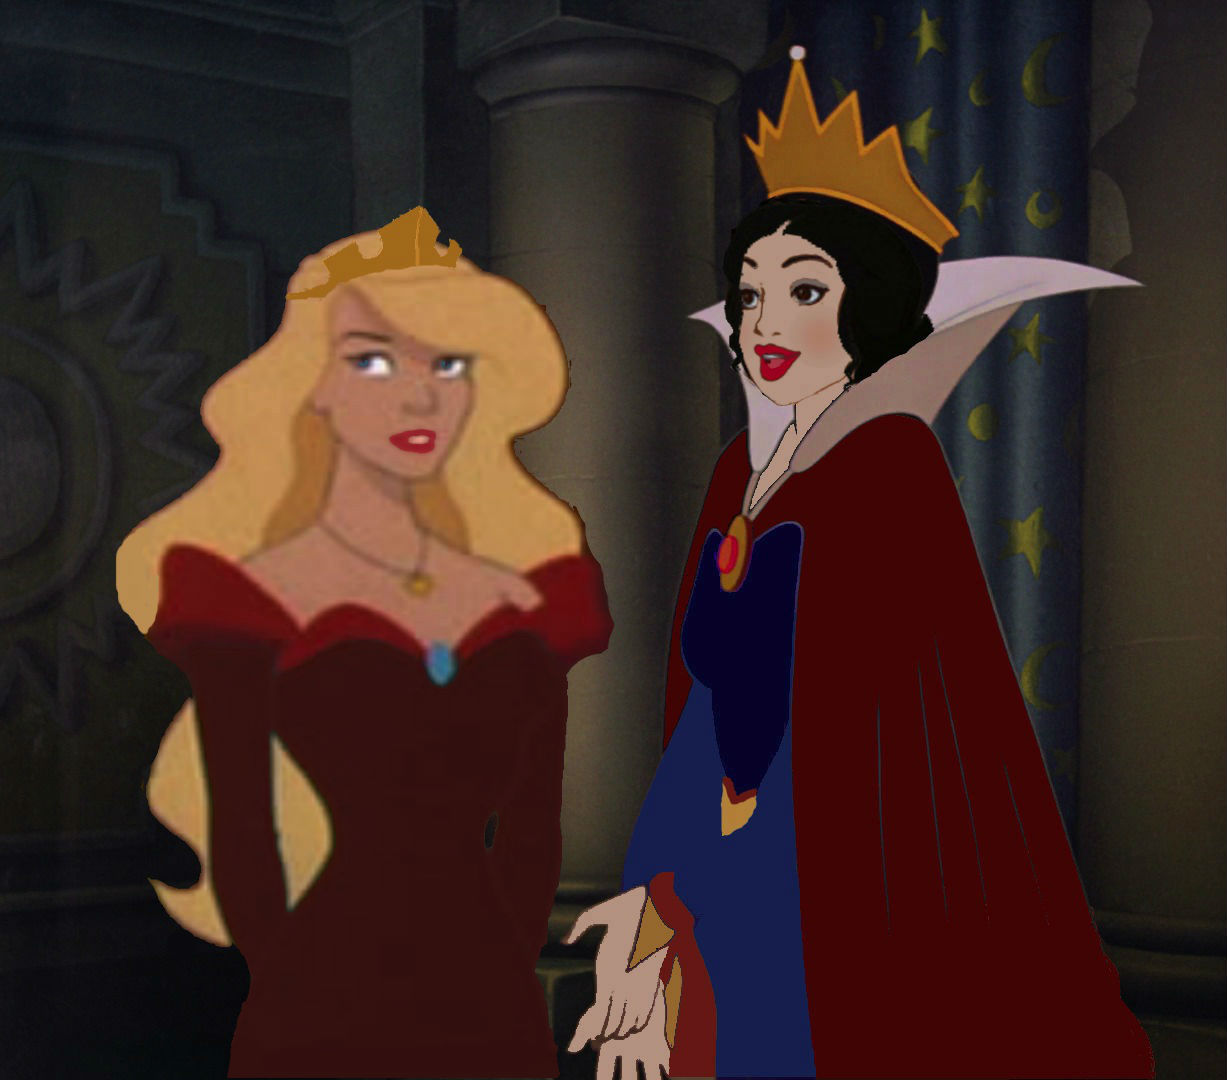 reyna Snow White and her daughter, Emma